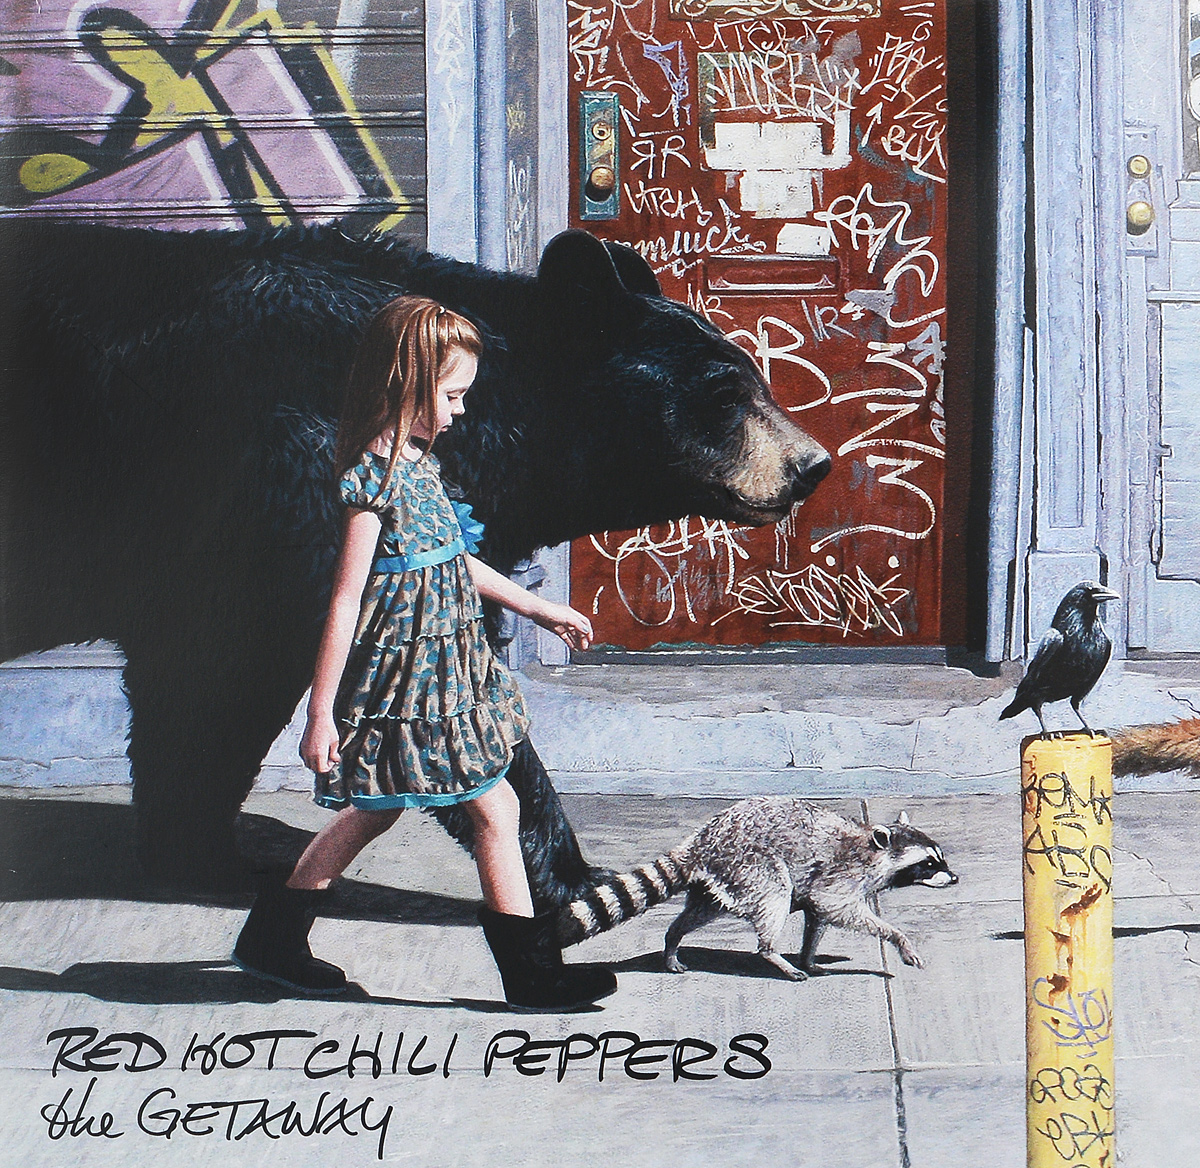 The Red Hot Chili Peppers Red Hot Chili Peppers. The Getaway (2 LP) red hot chili peppers red hot chili peppers the getaway 2 lp